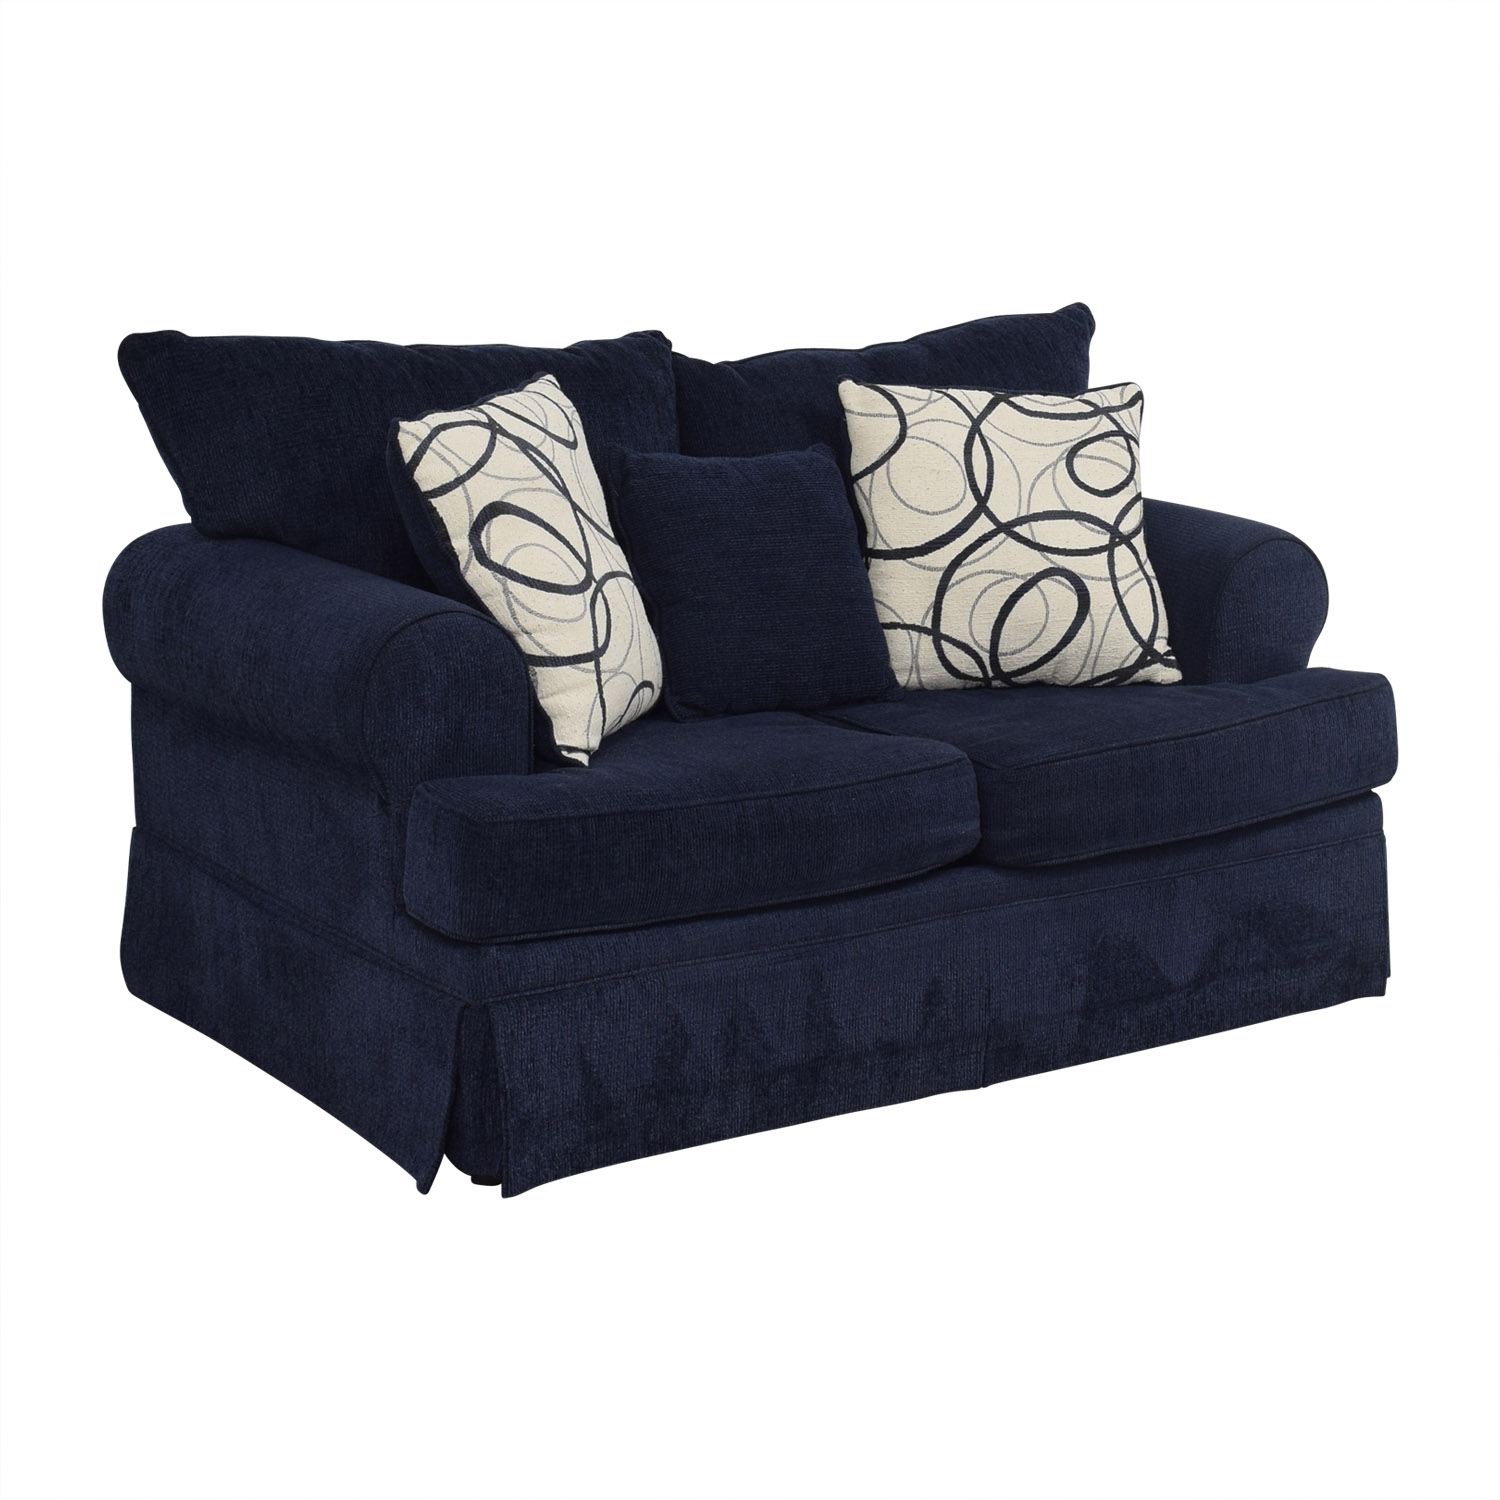 84 OFF Bobs Furniture Bobs Furniture Mystic Navy